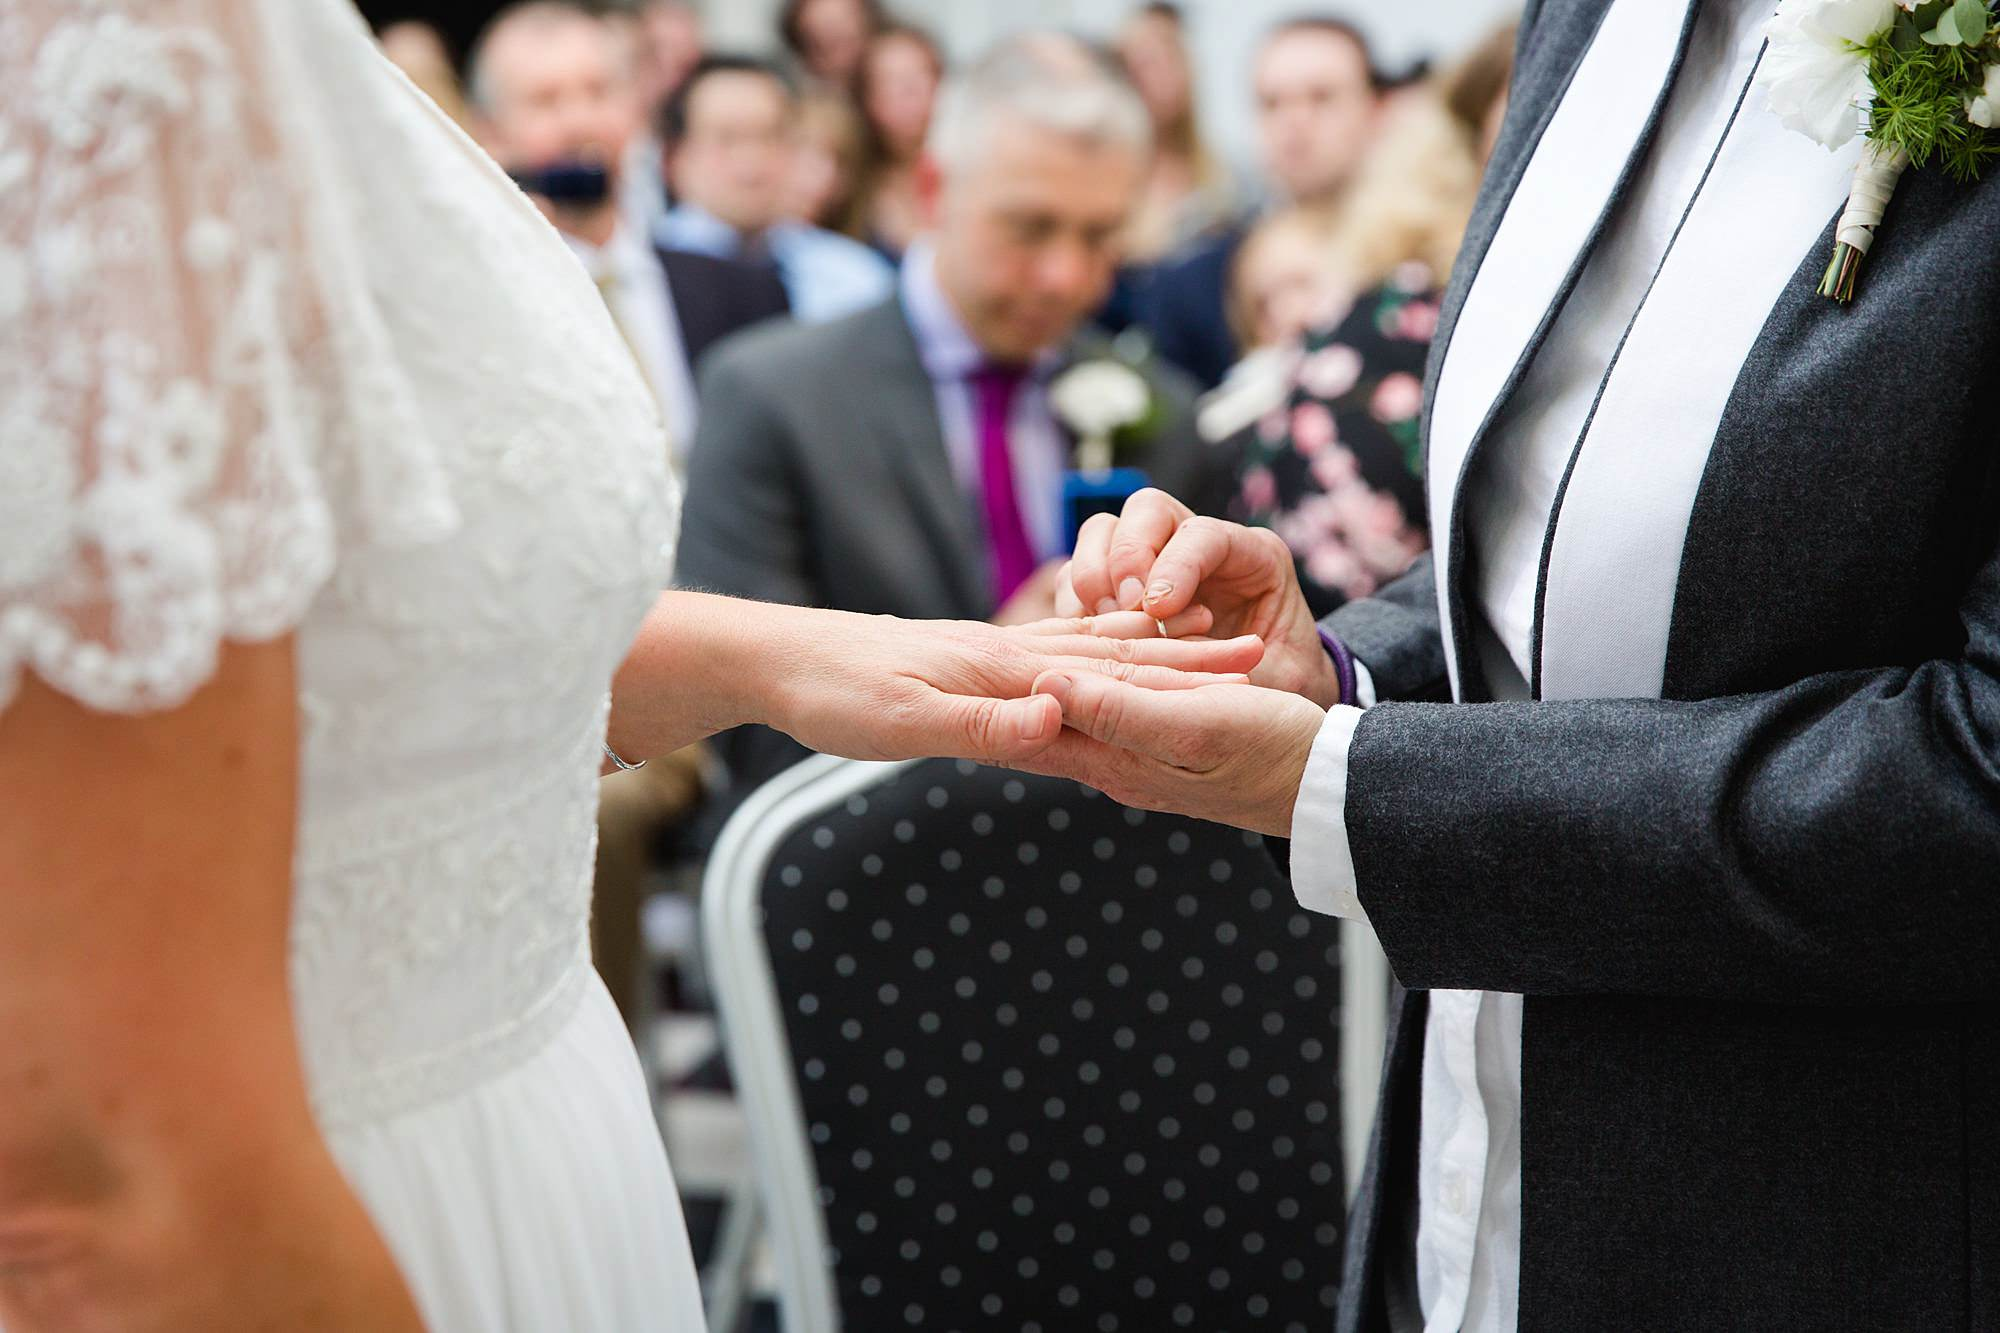 Twickenham wedding photography brides exchange rings at york house